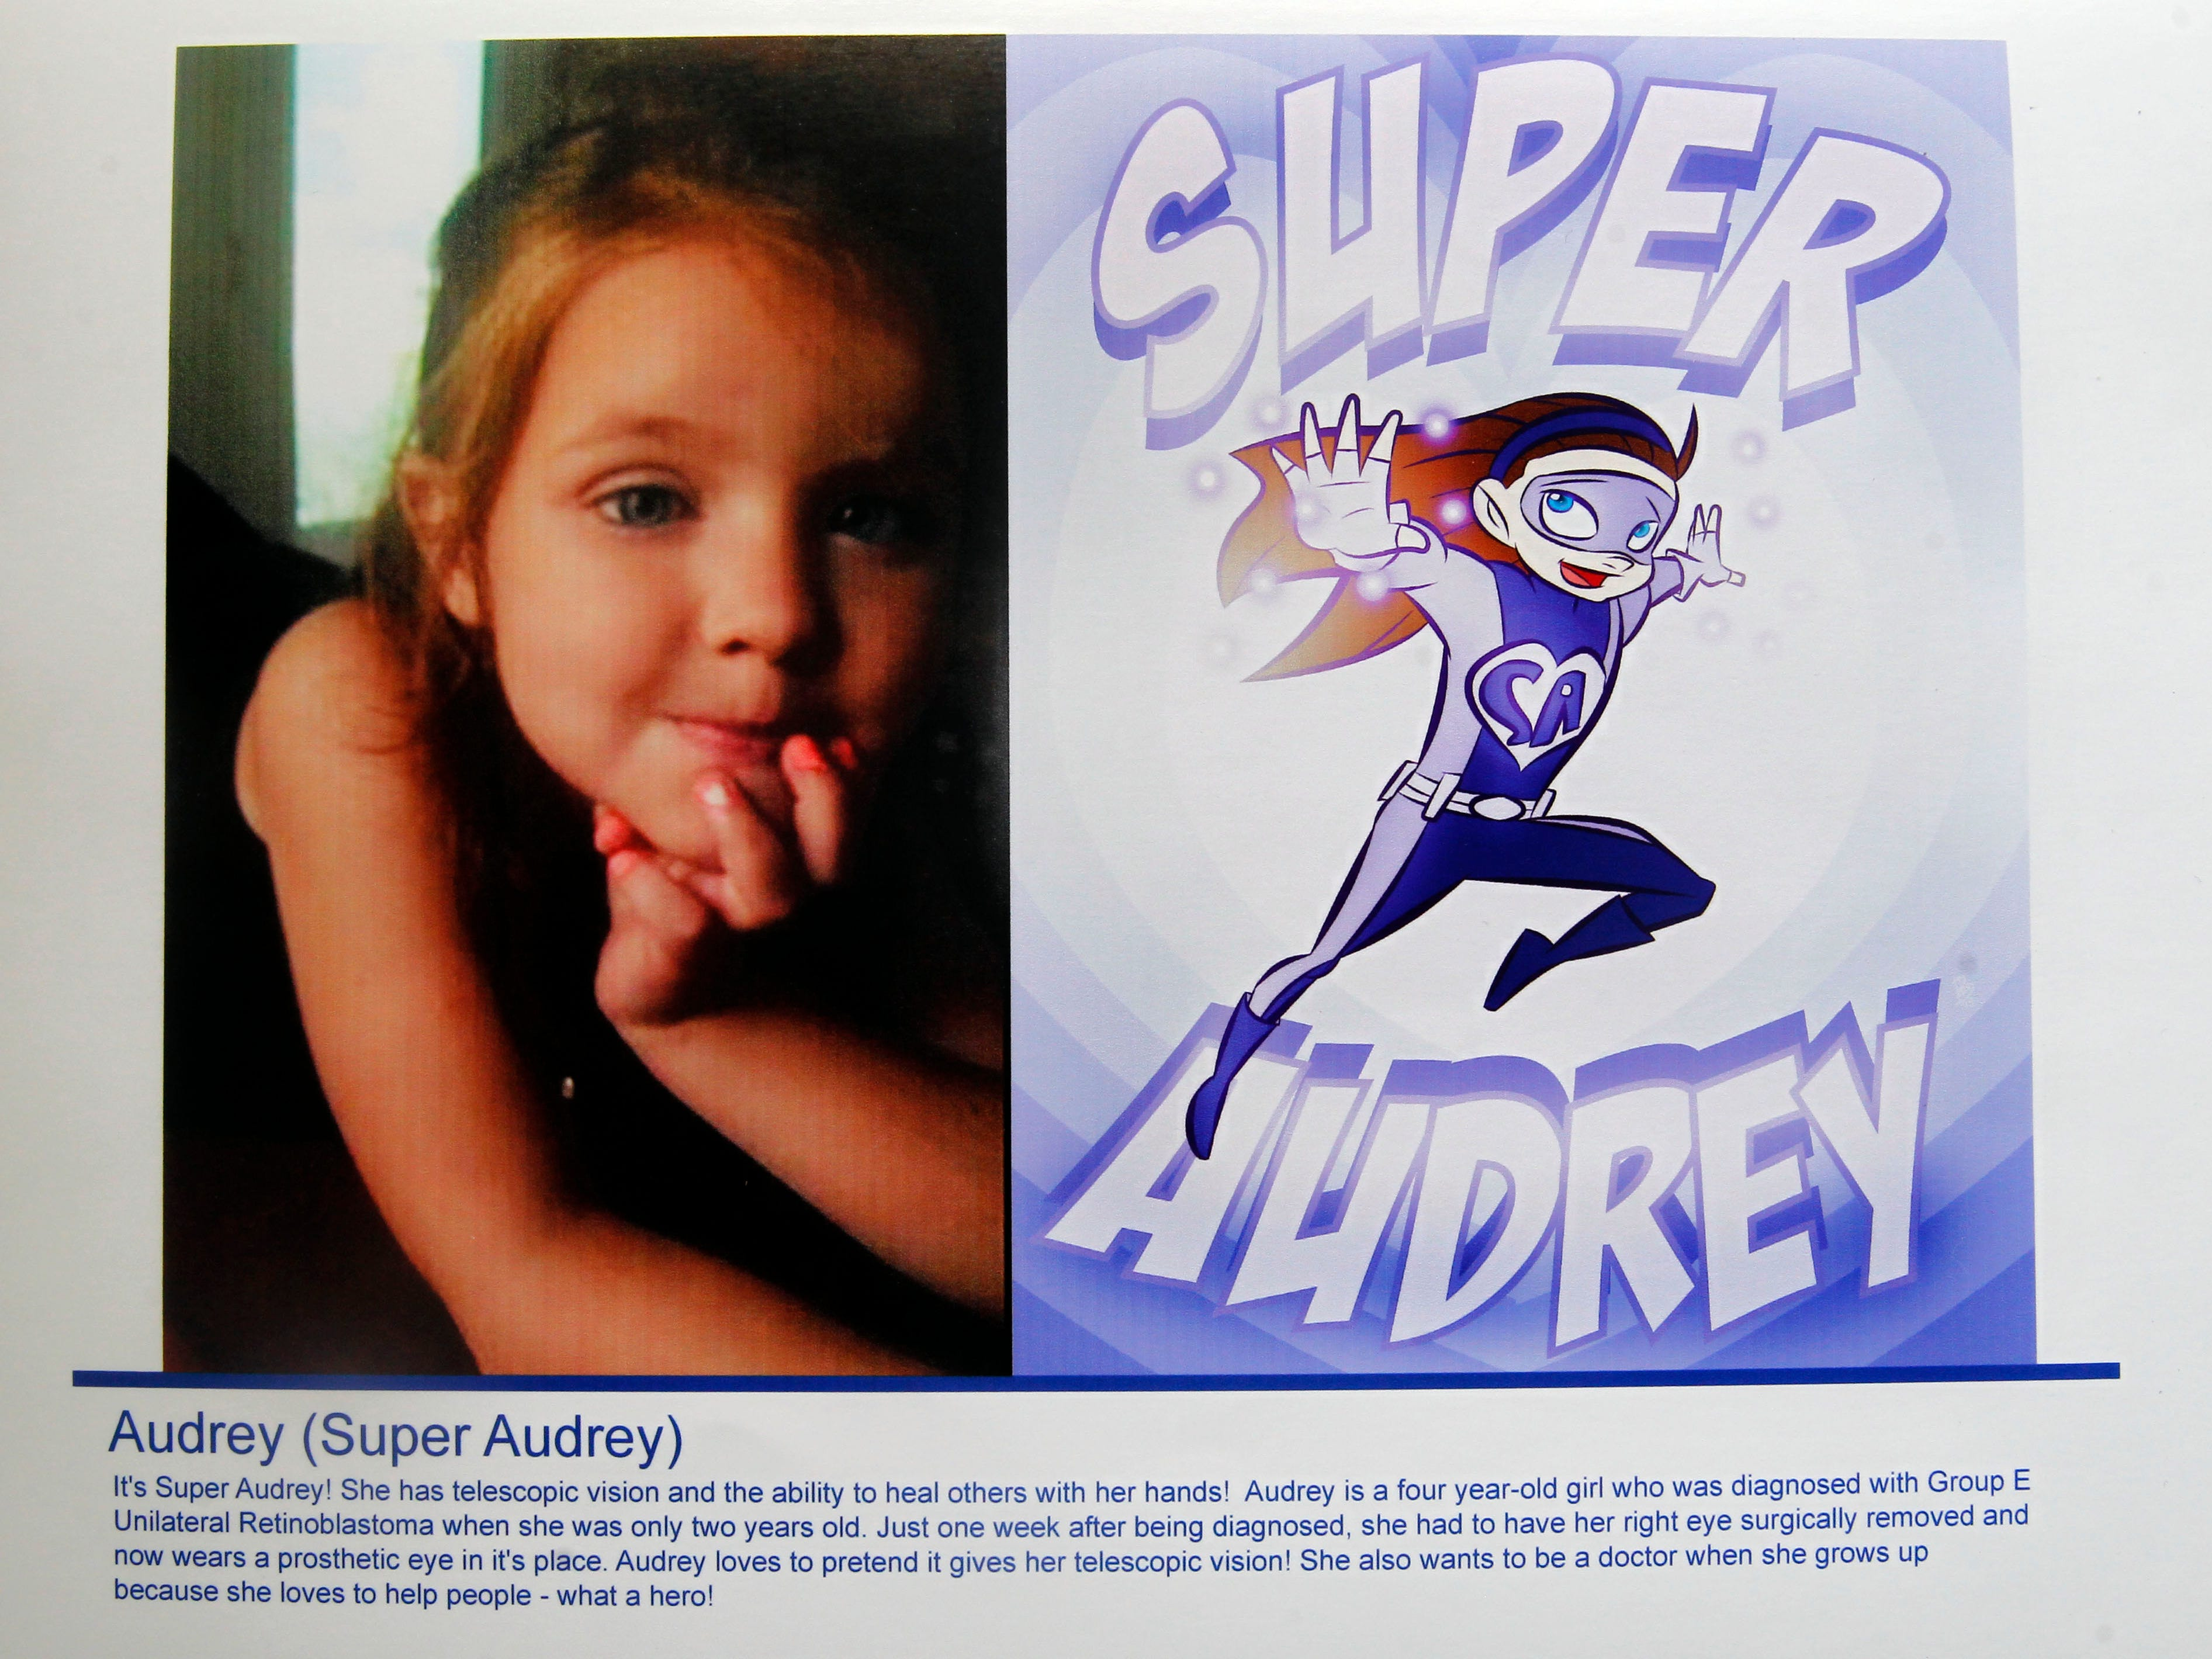 Super Audrey is a superhero identity created by Bryan Dyer, owner of You Are the Hero.